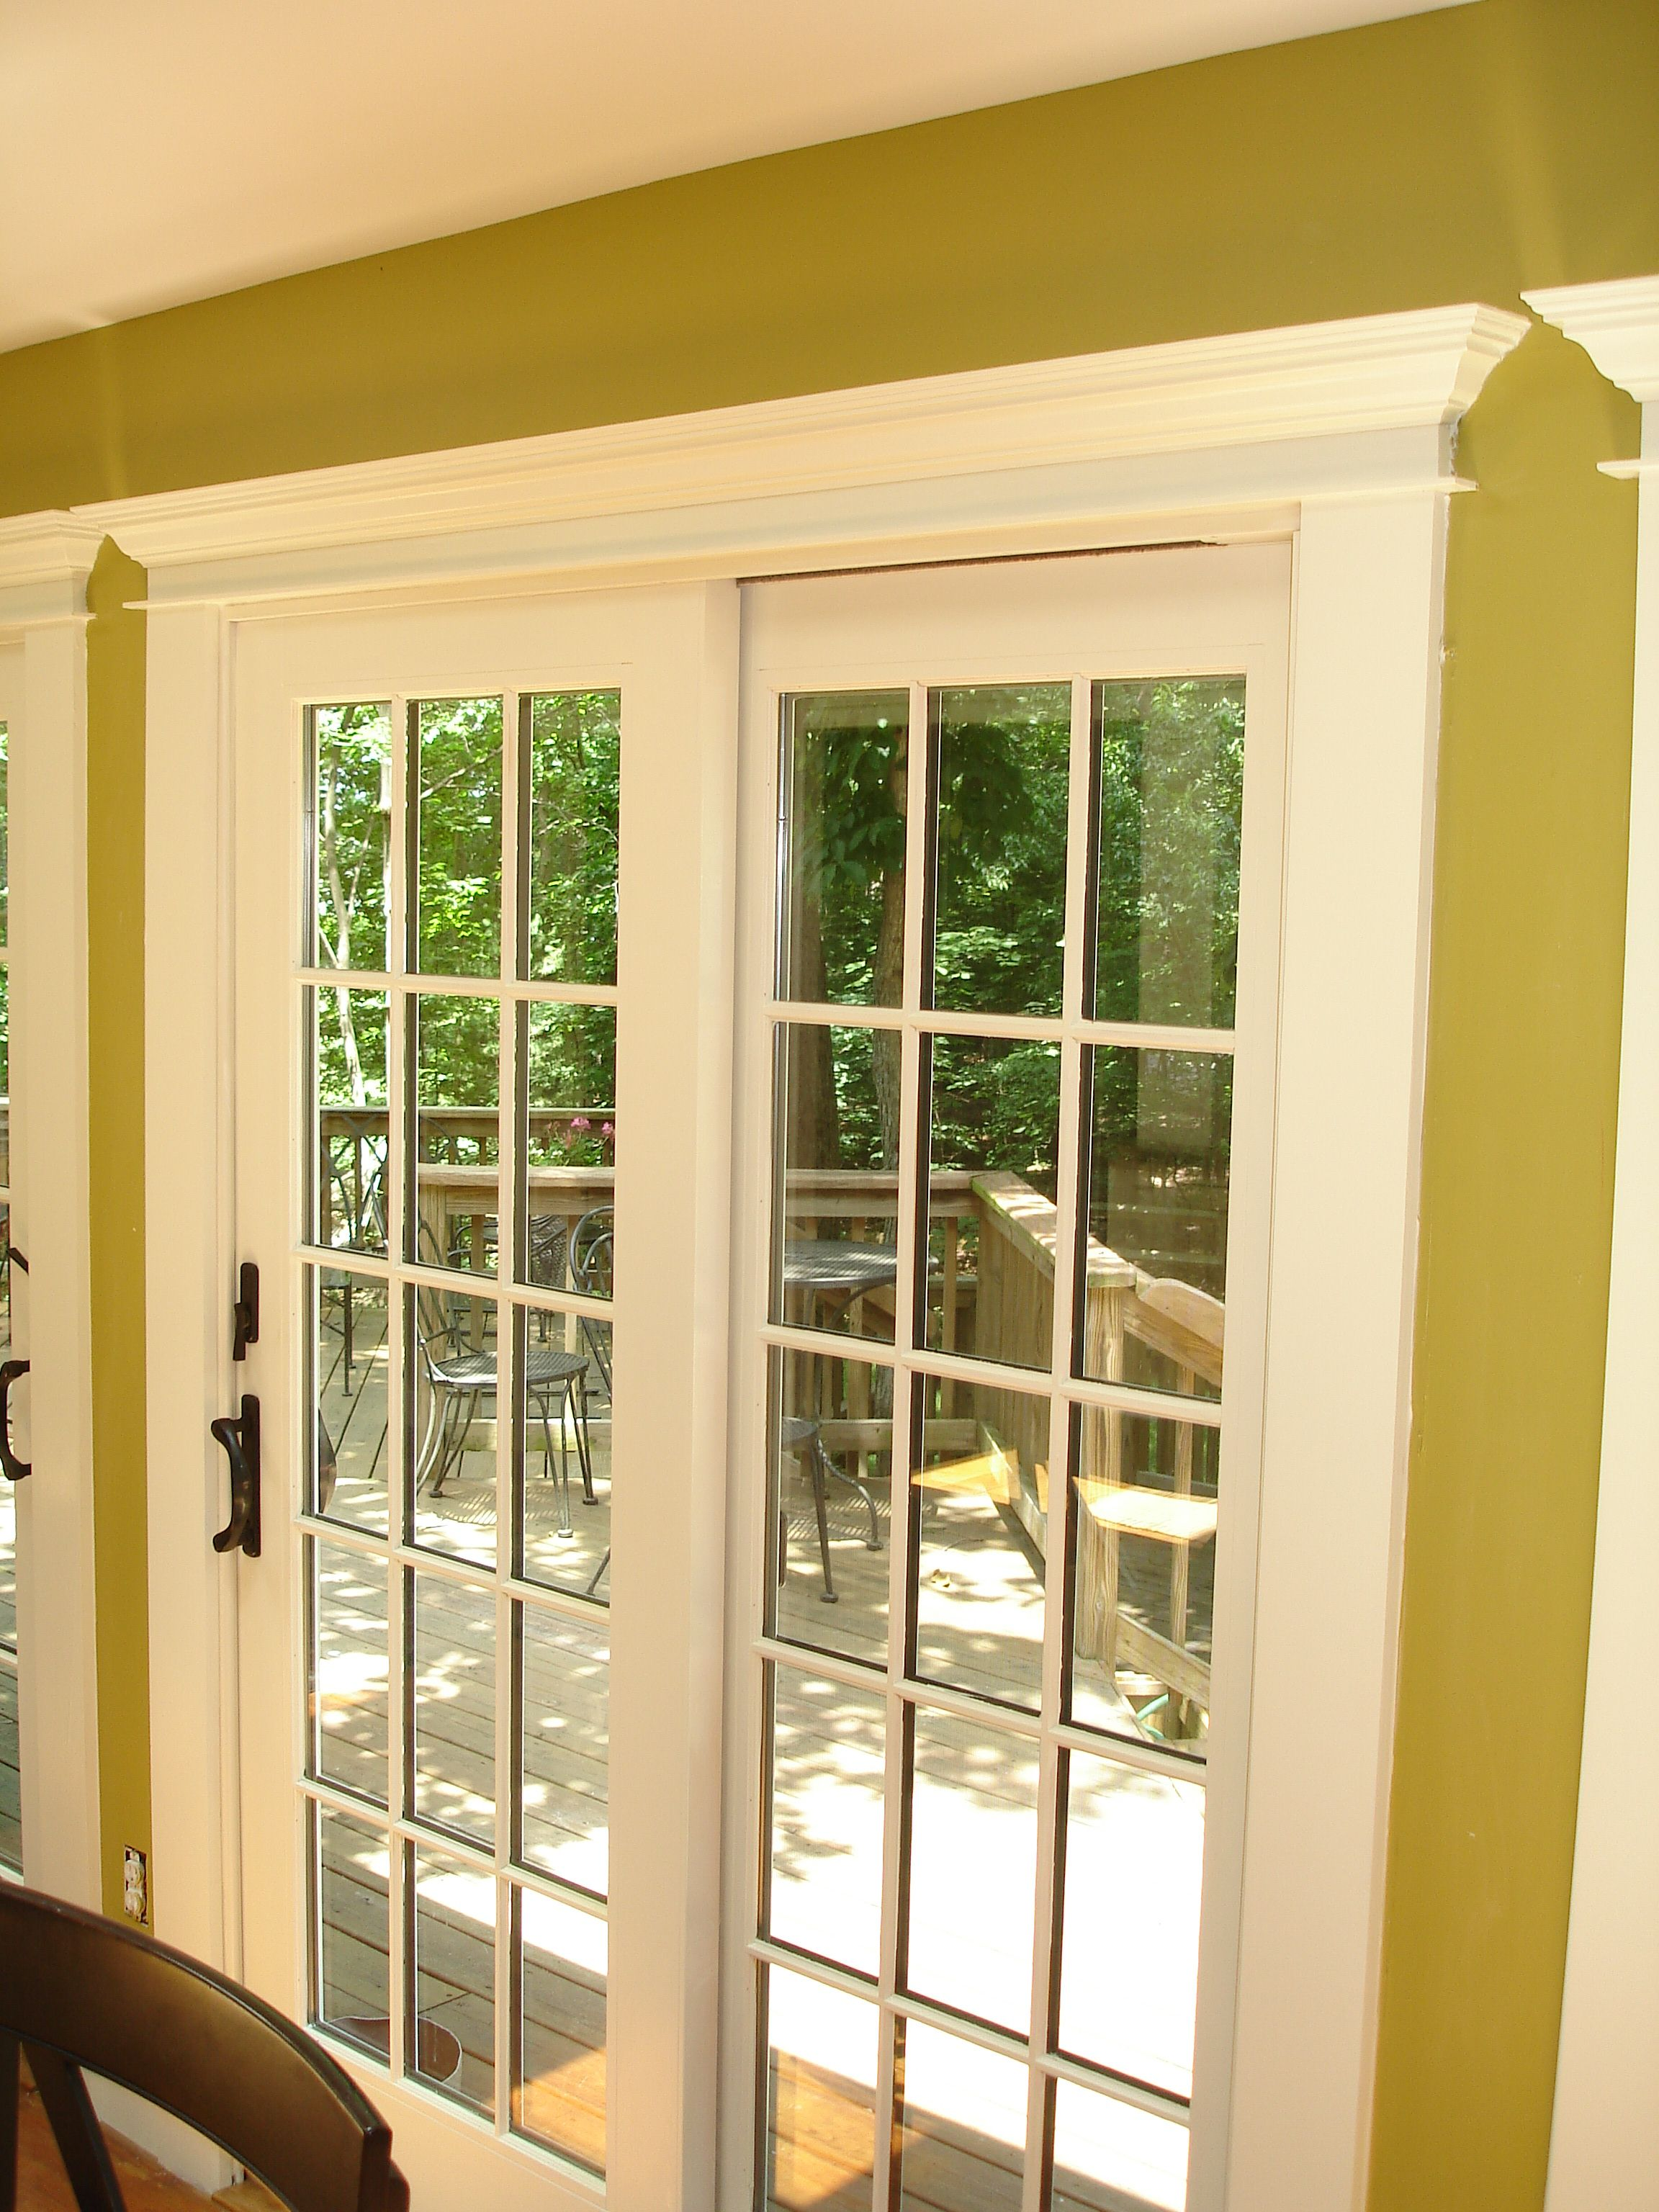 Anderson 400 Series Door Sliding French Doors Patio French Doors Interior Anderson Sliding Patio Doors